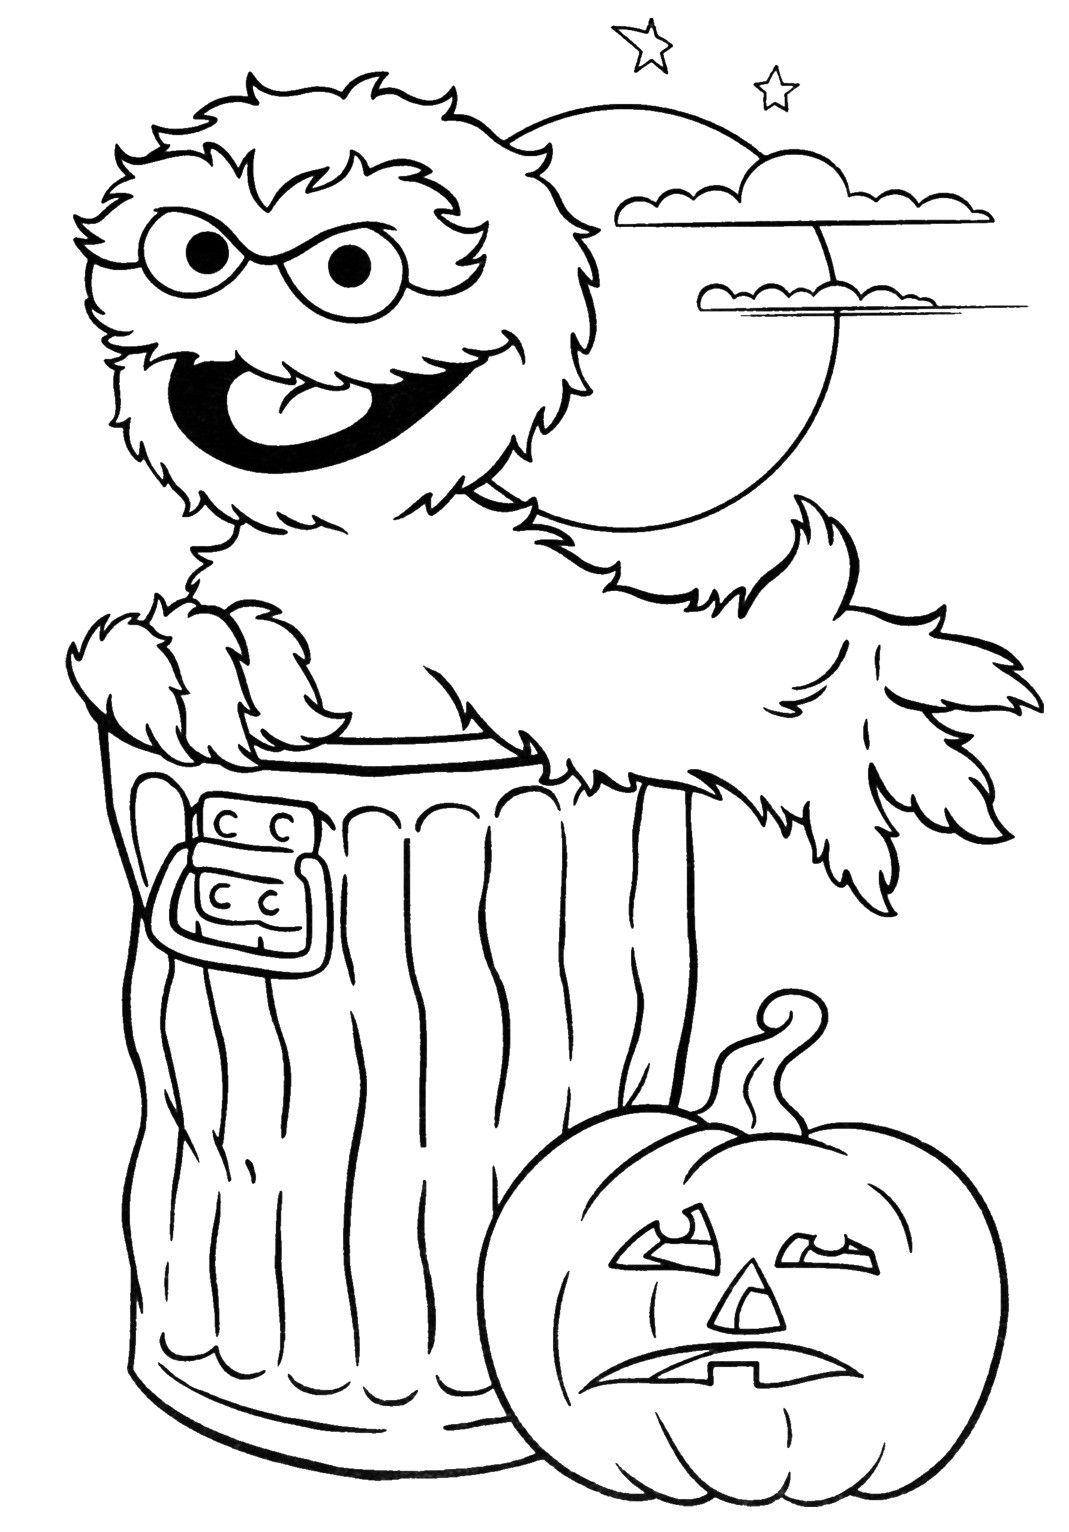 sesame street oscar the grouch halloween coloring page